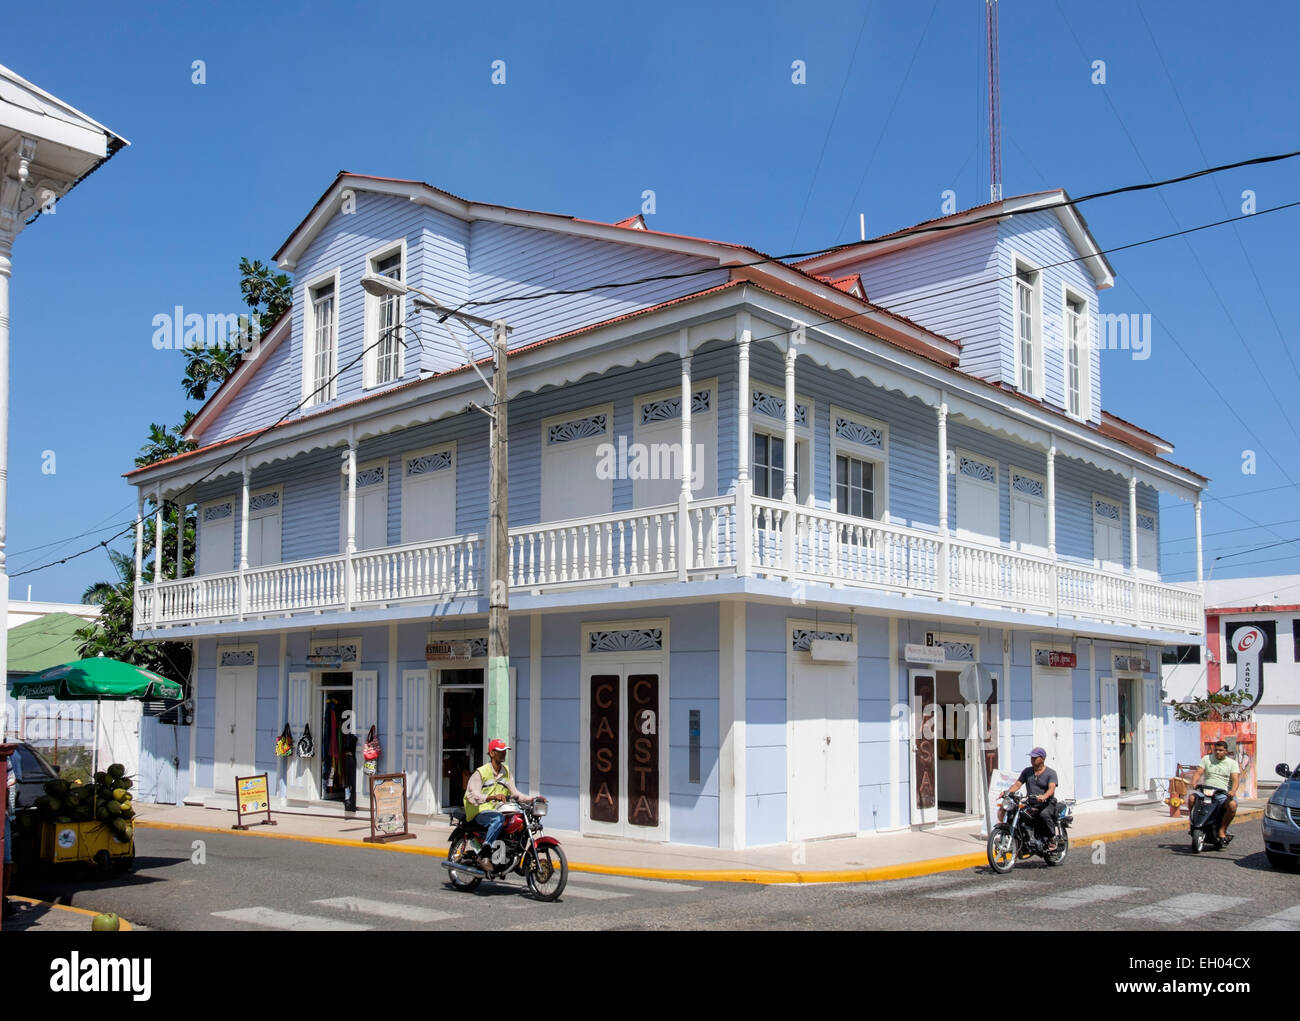 Colonial Victorian old wooden building containing shops on Calle Beller Street, San Felipe de Puerto Plata, Dominican - Stock Image